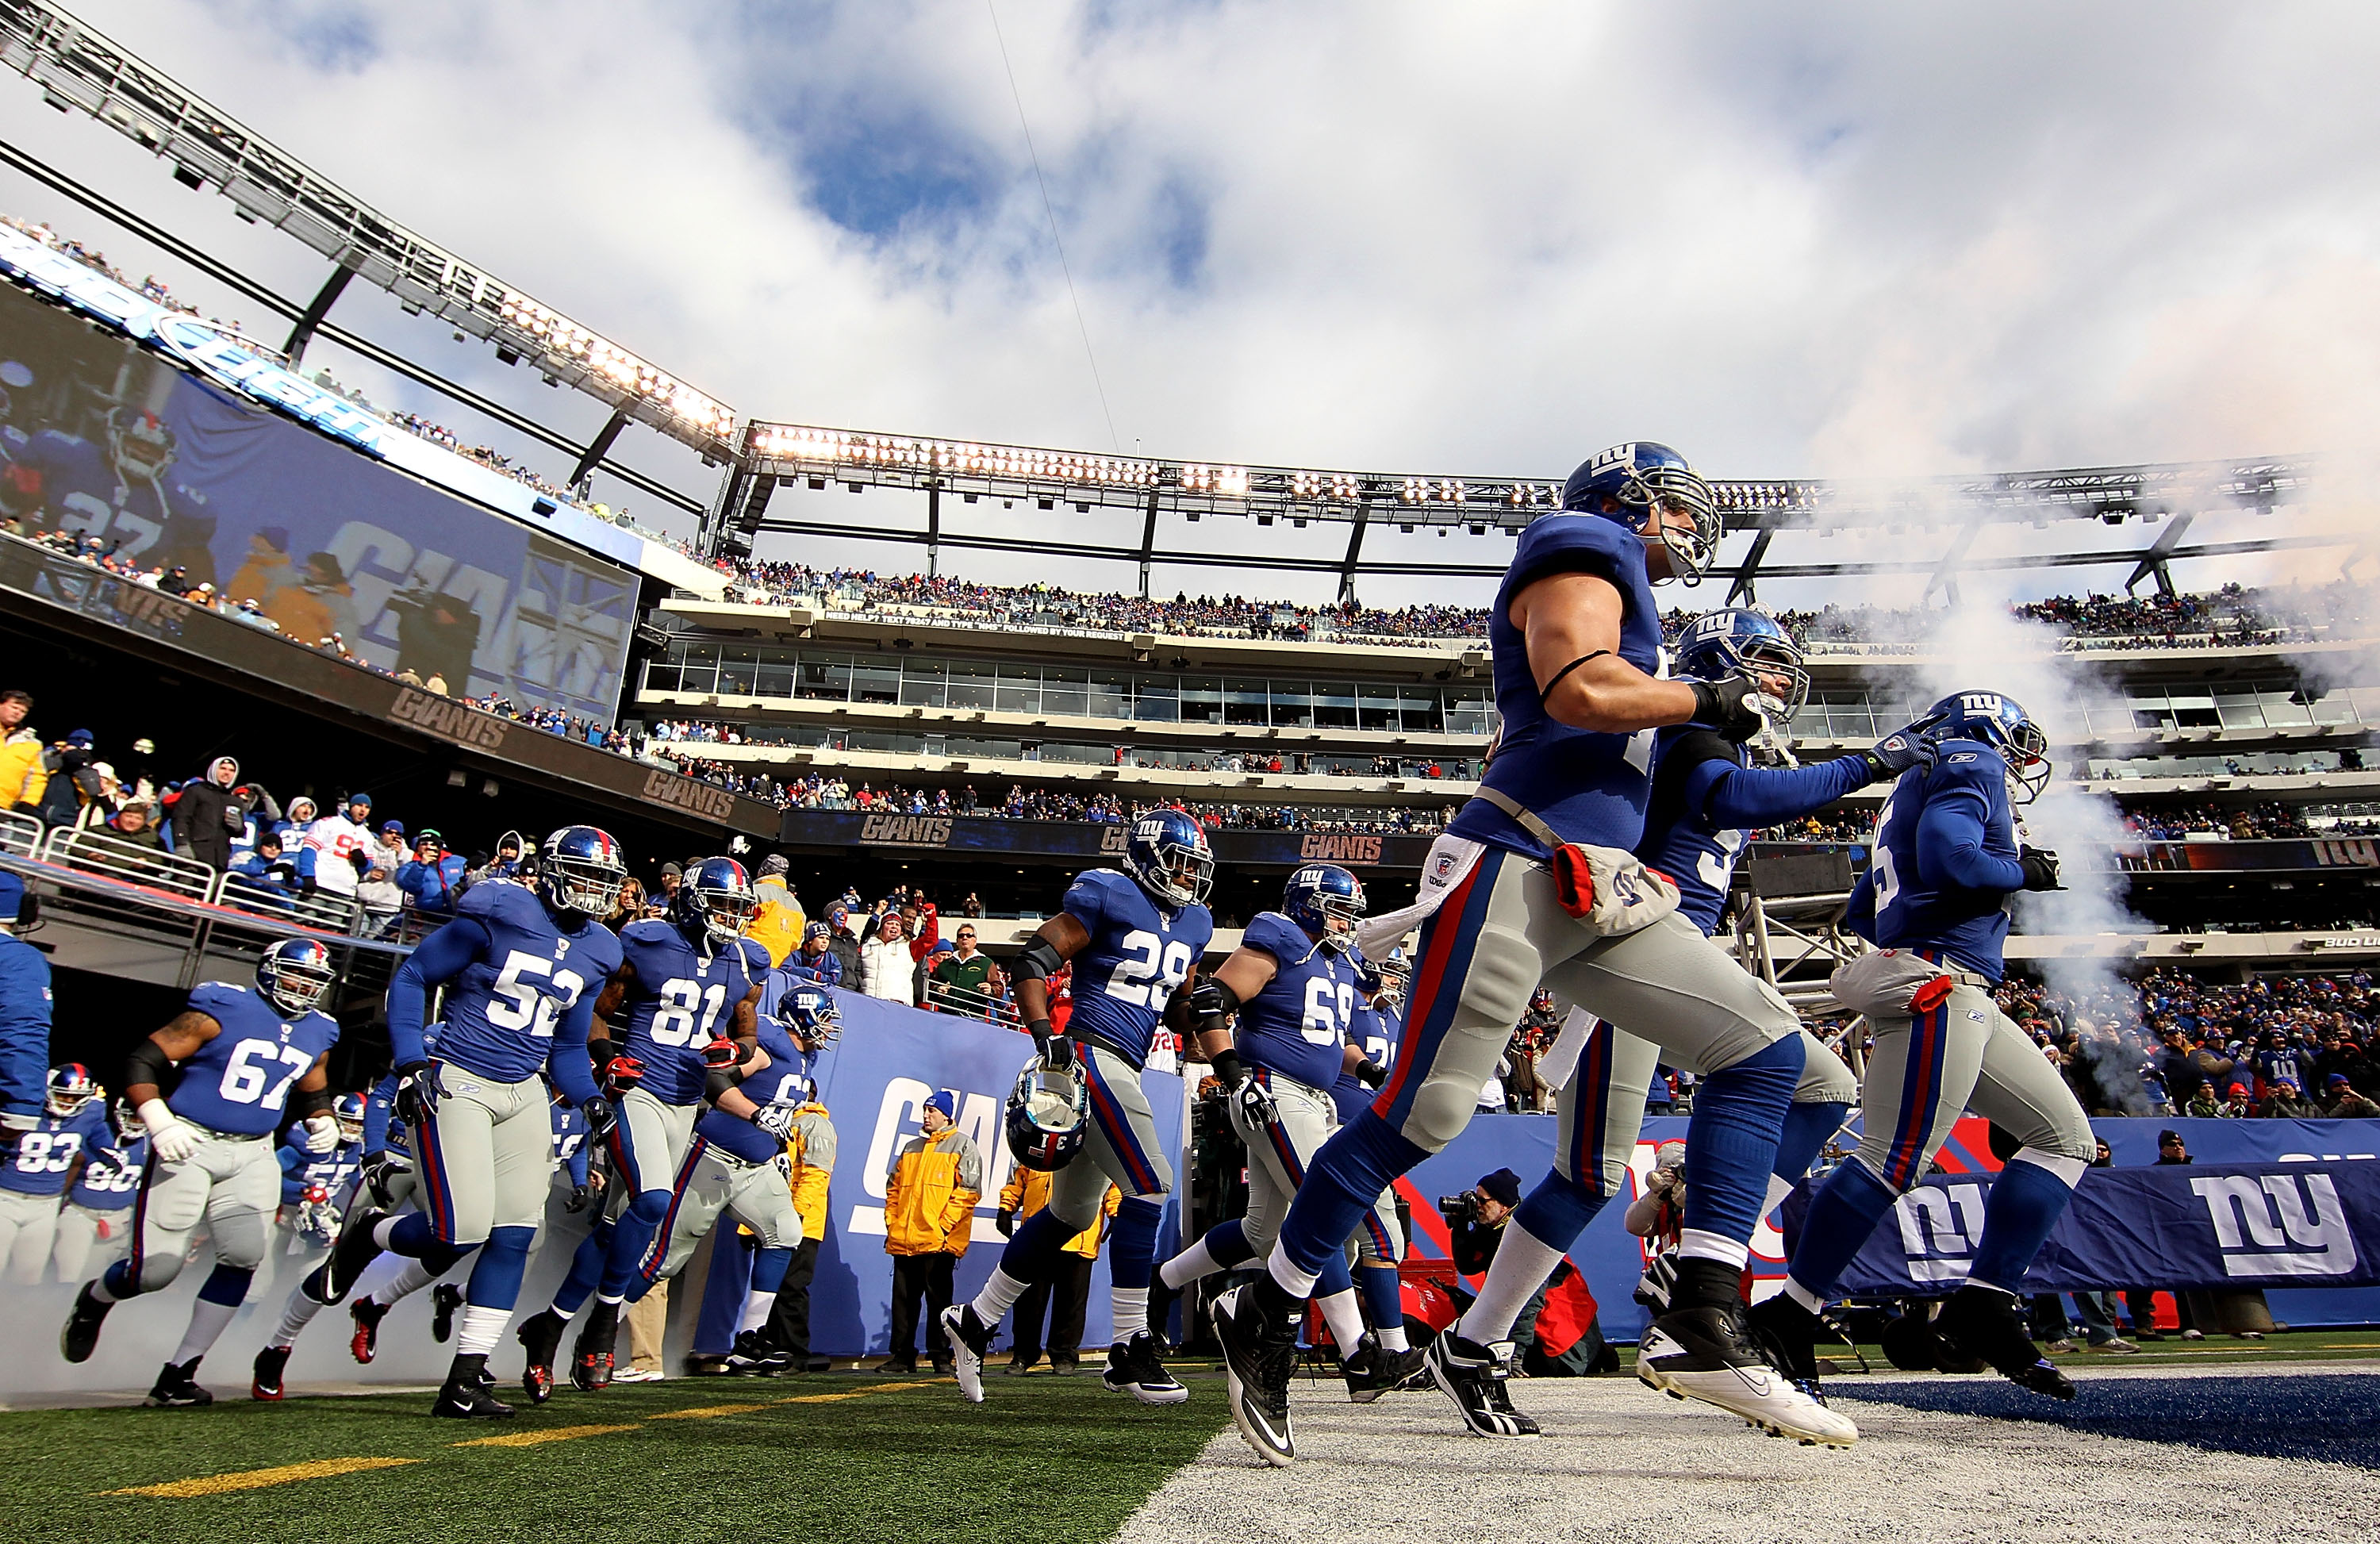 EAST RUTHERFORD, NJ - DECEMBER 05:  The New York Giants run onto the field before a game against the Washington Redskins on December 5, 2010 at The New Meadowlands Stadium in East Rutherford, New Jersey.  (Photo by Al Bello/Getty Images)